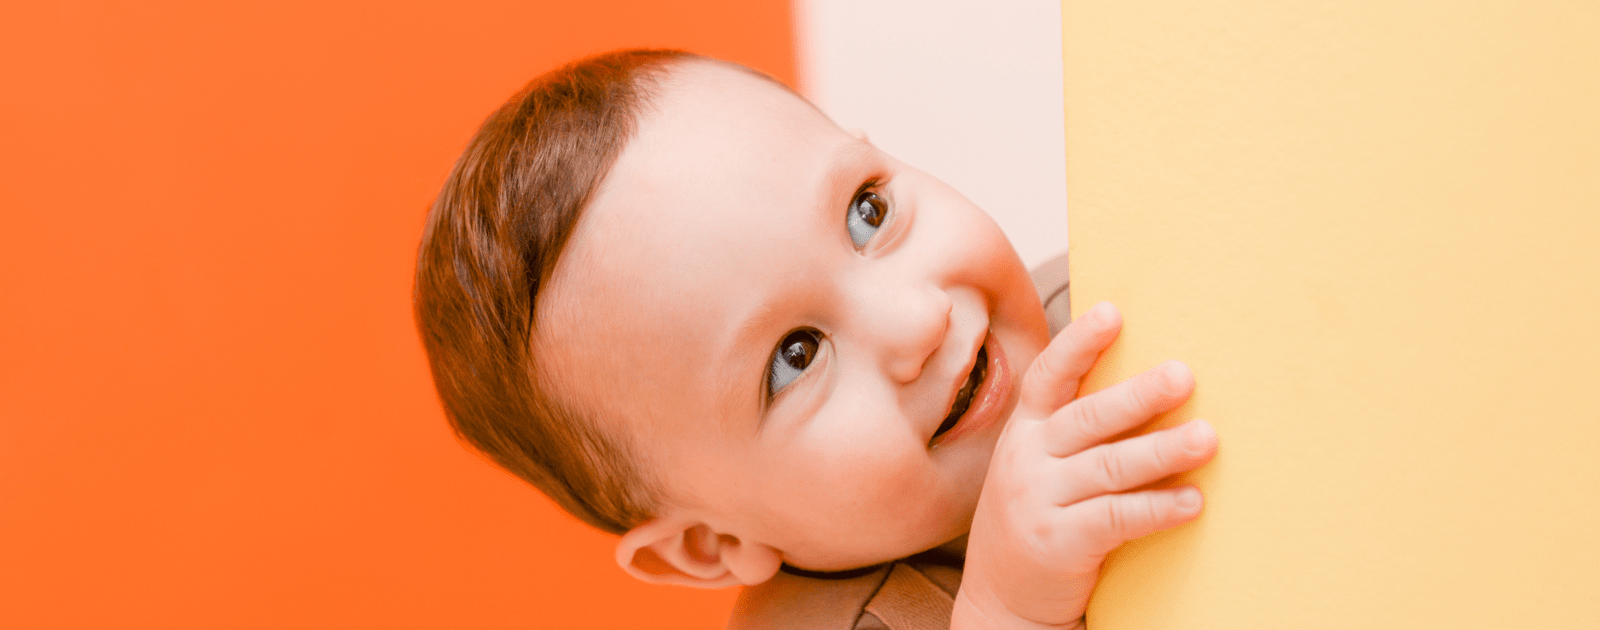 A Baby's First Memory is Likely False